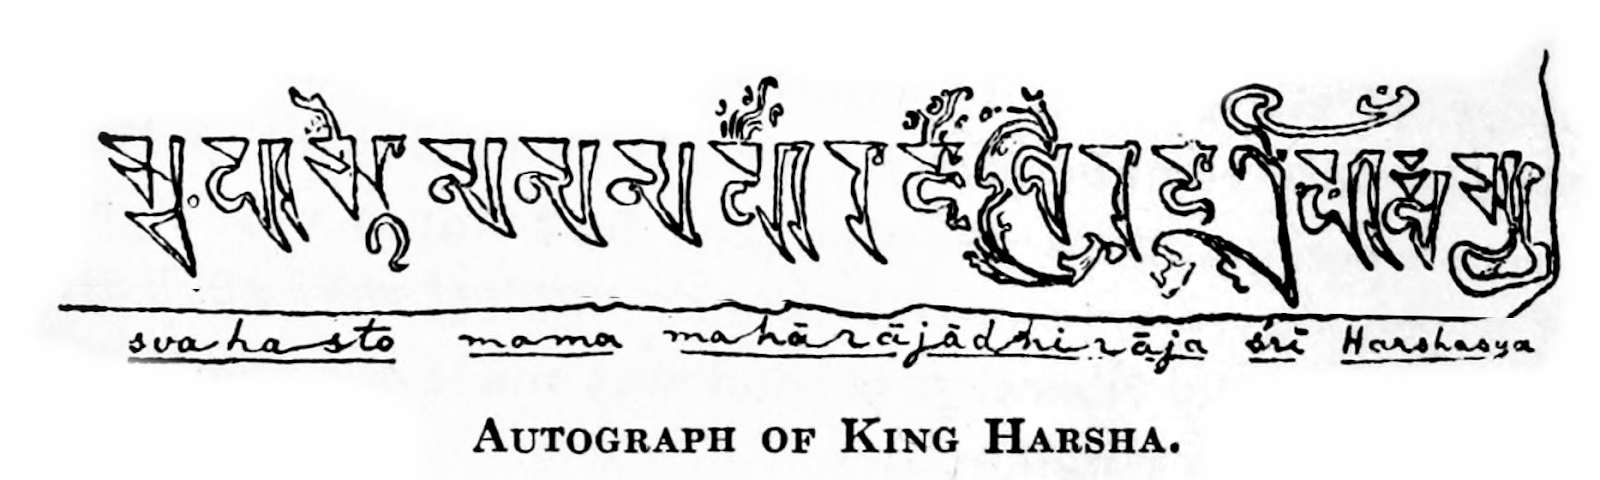 Autograph of Harshavardhana of Theneshwar from V A Smith's work